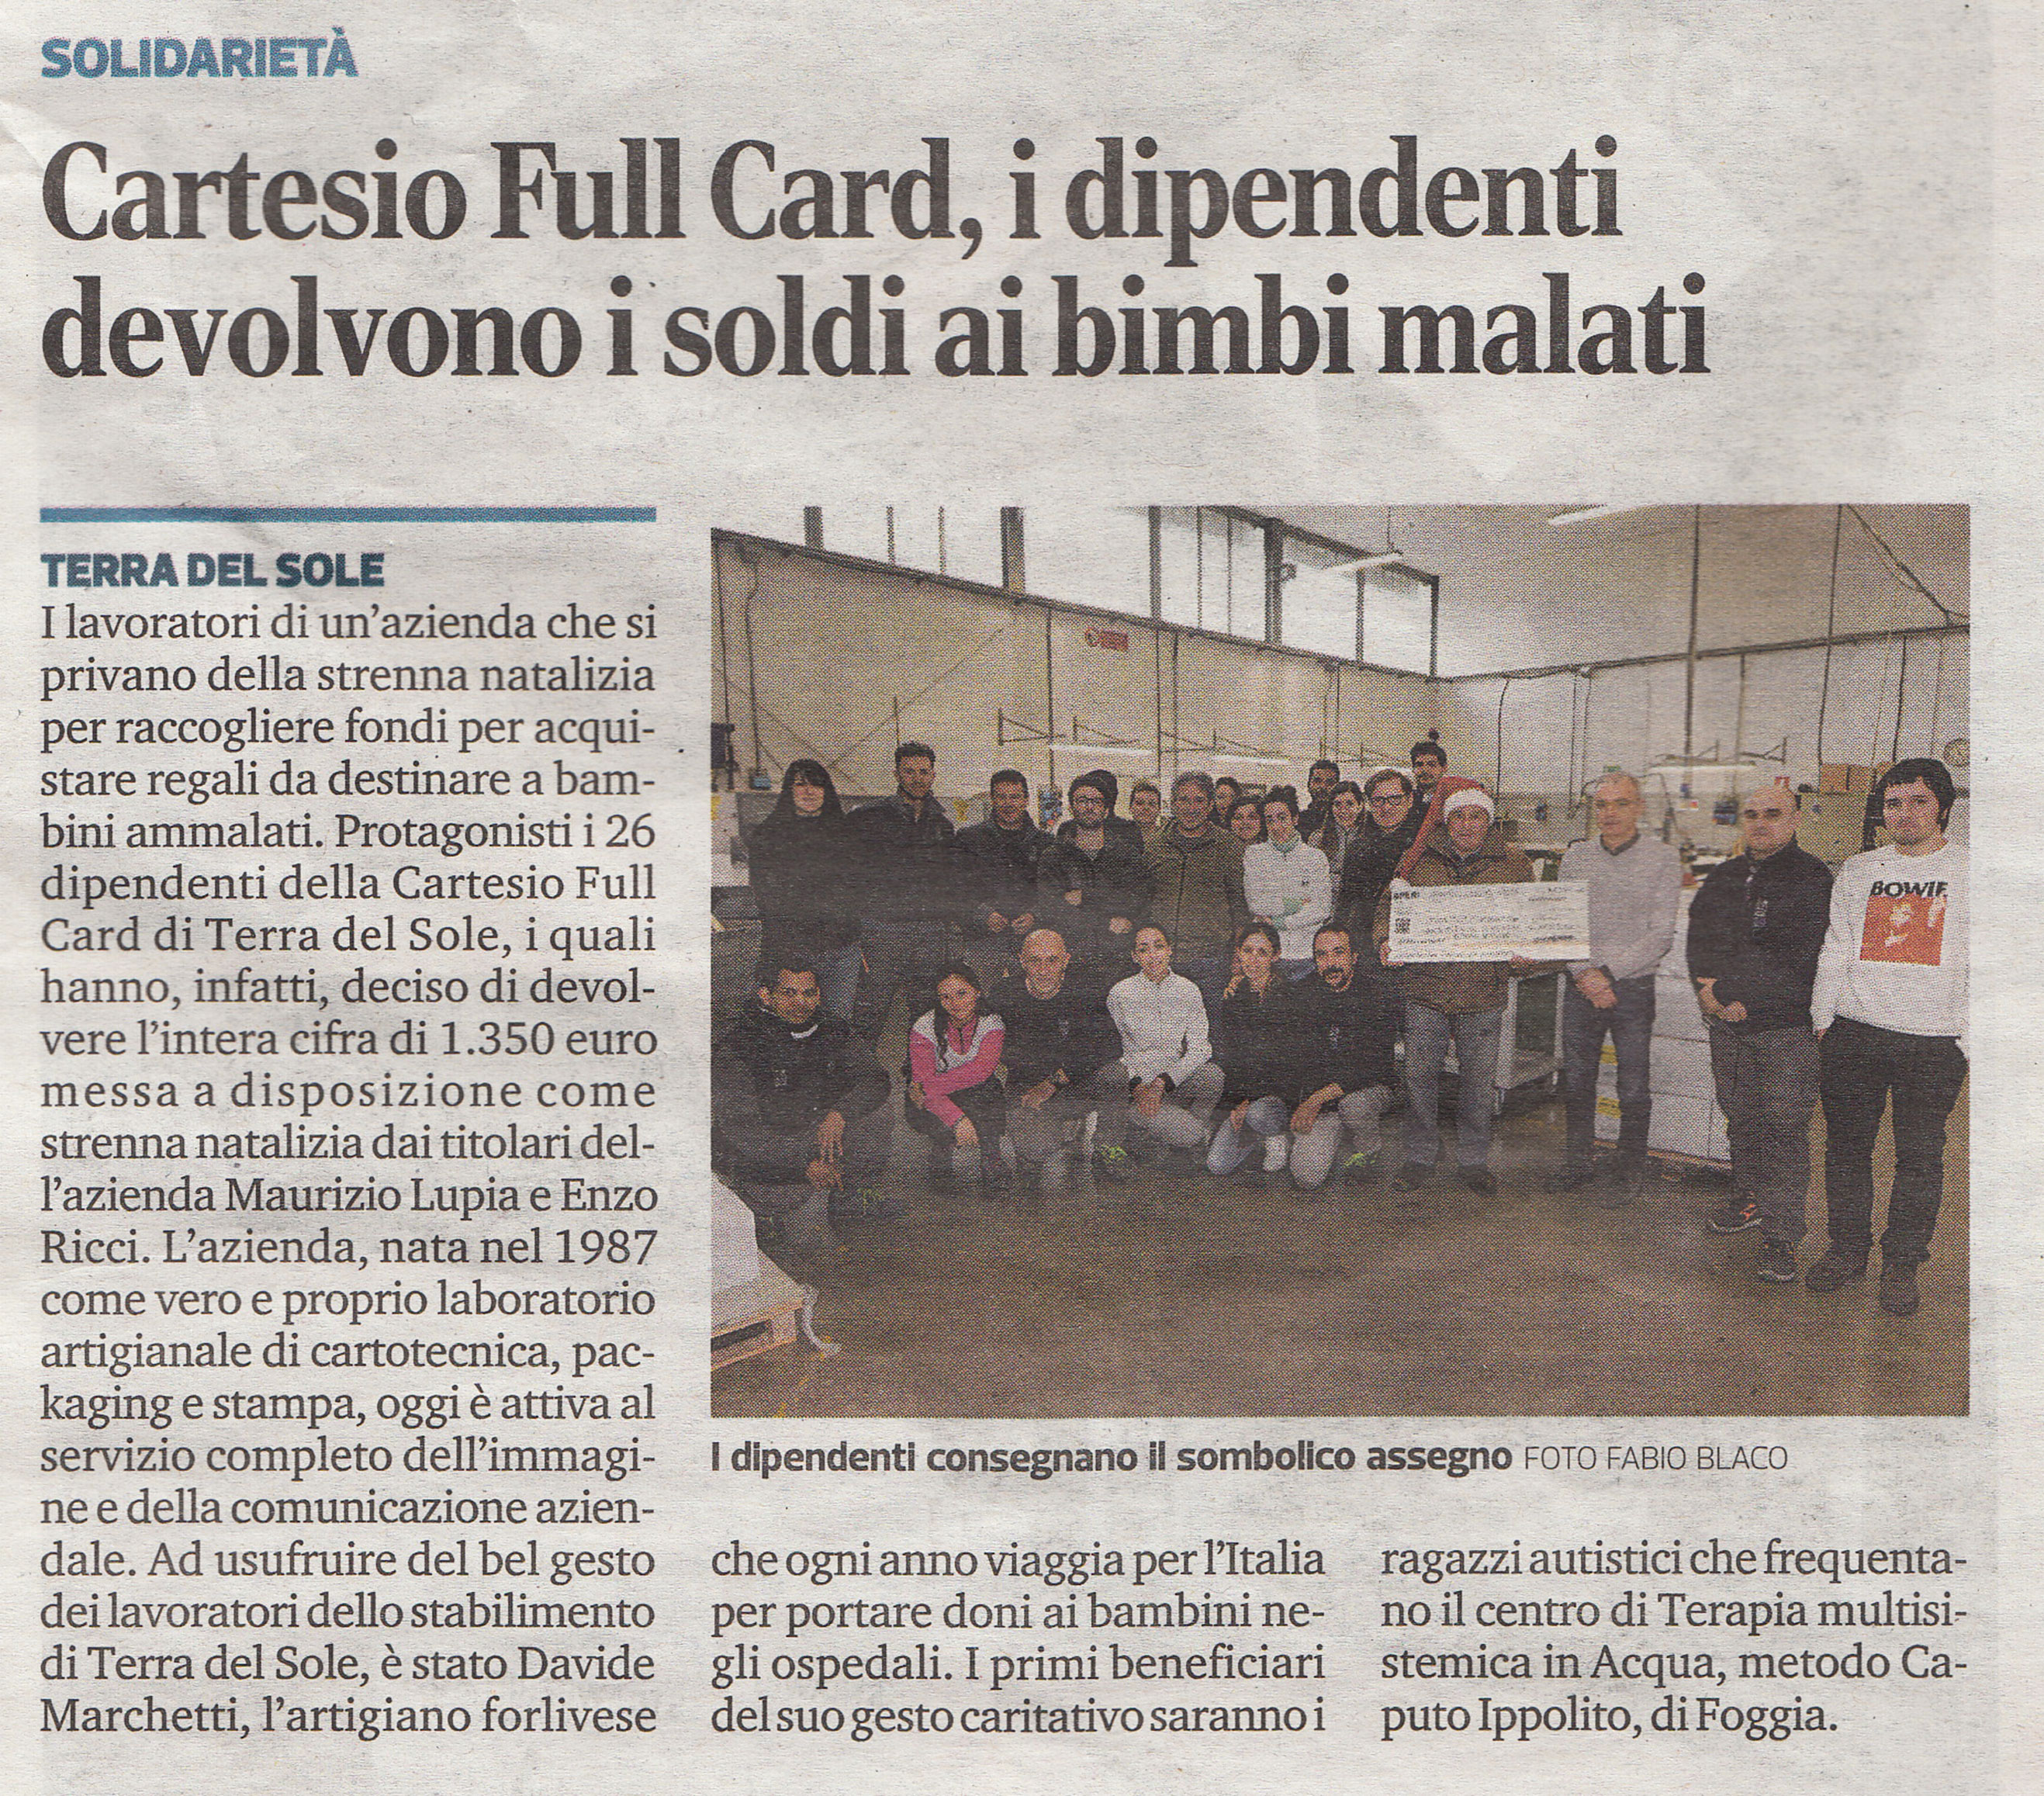 Cartesio fullcard solidarietà